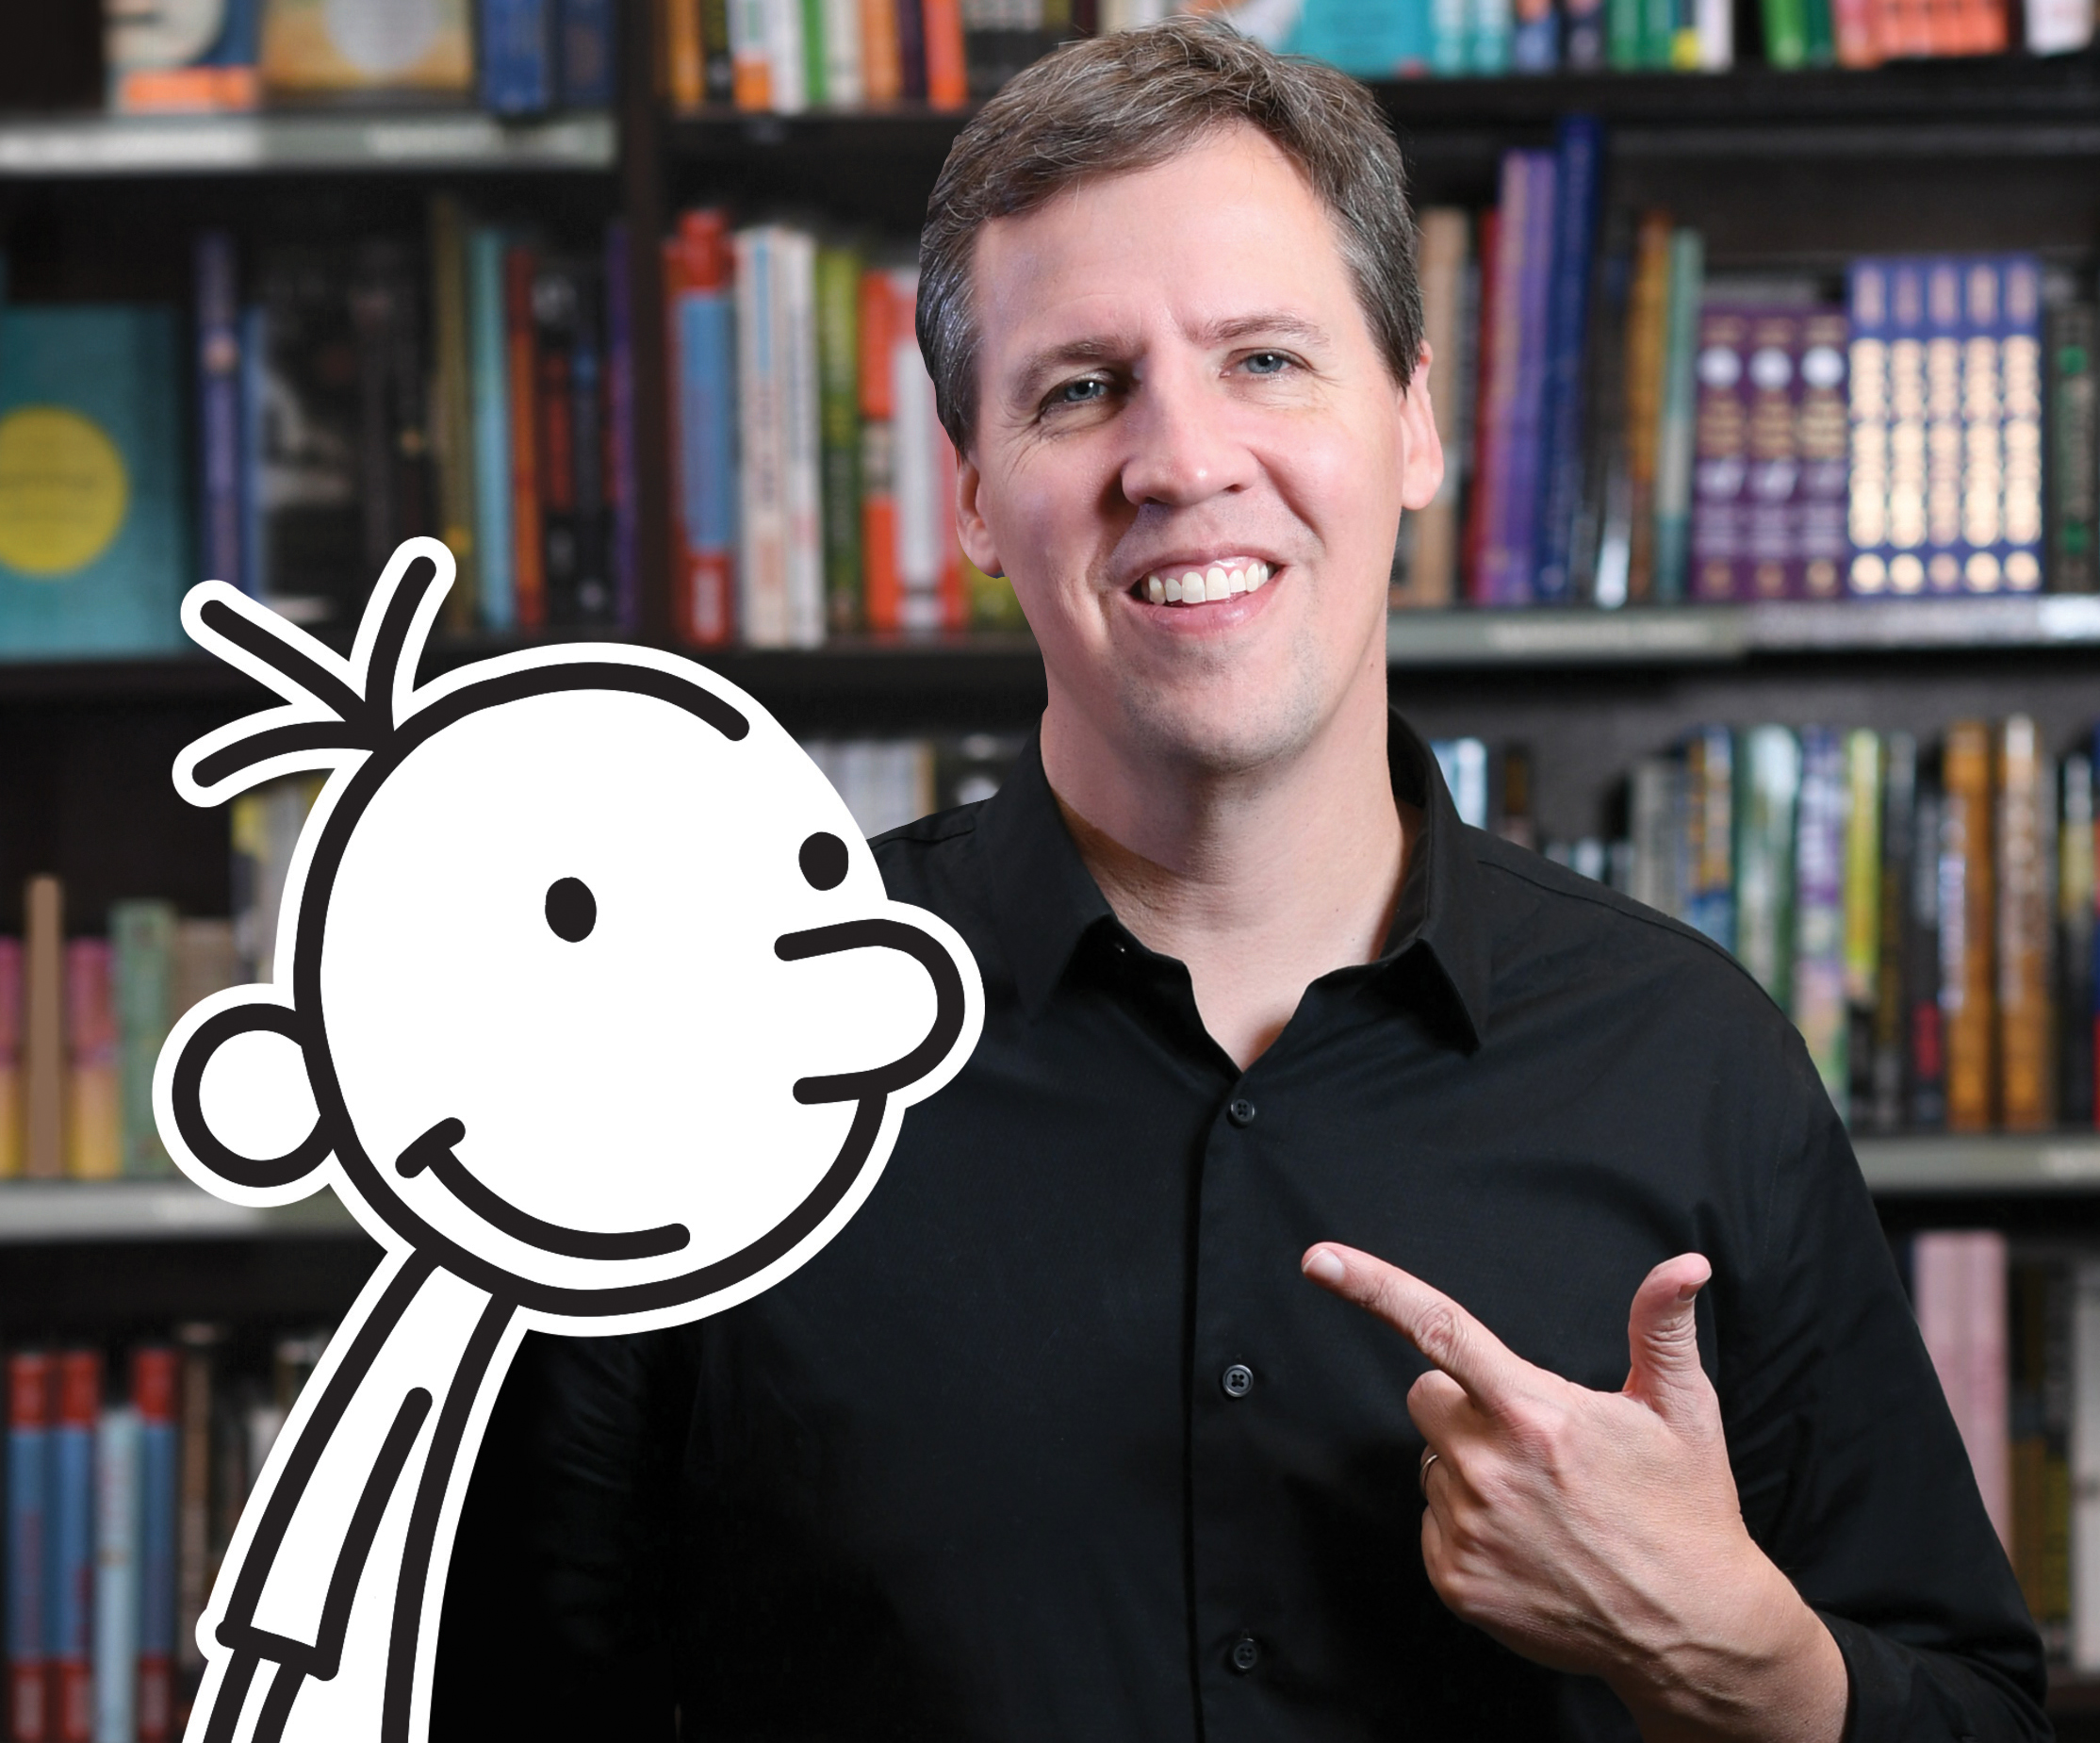 Q A Diary Of A Wimpy Kid Author Talks N C Appearances New Book Charlotte Parent